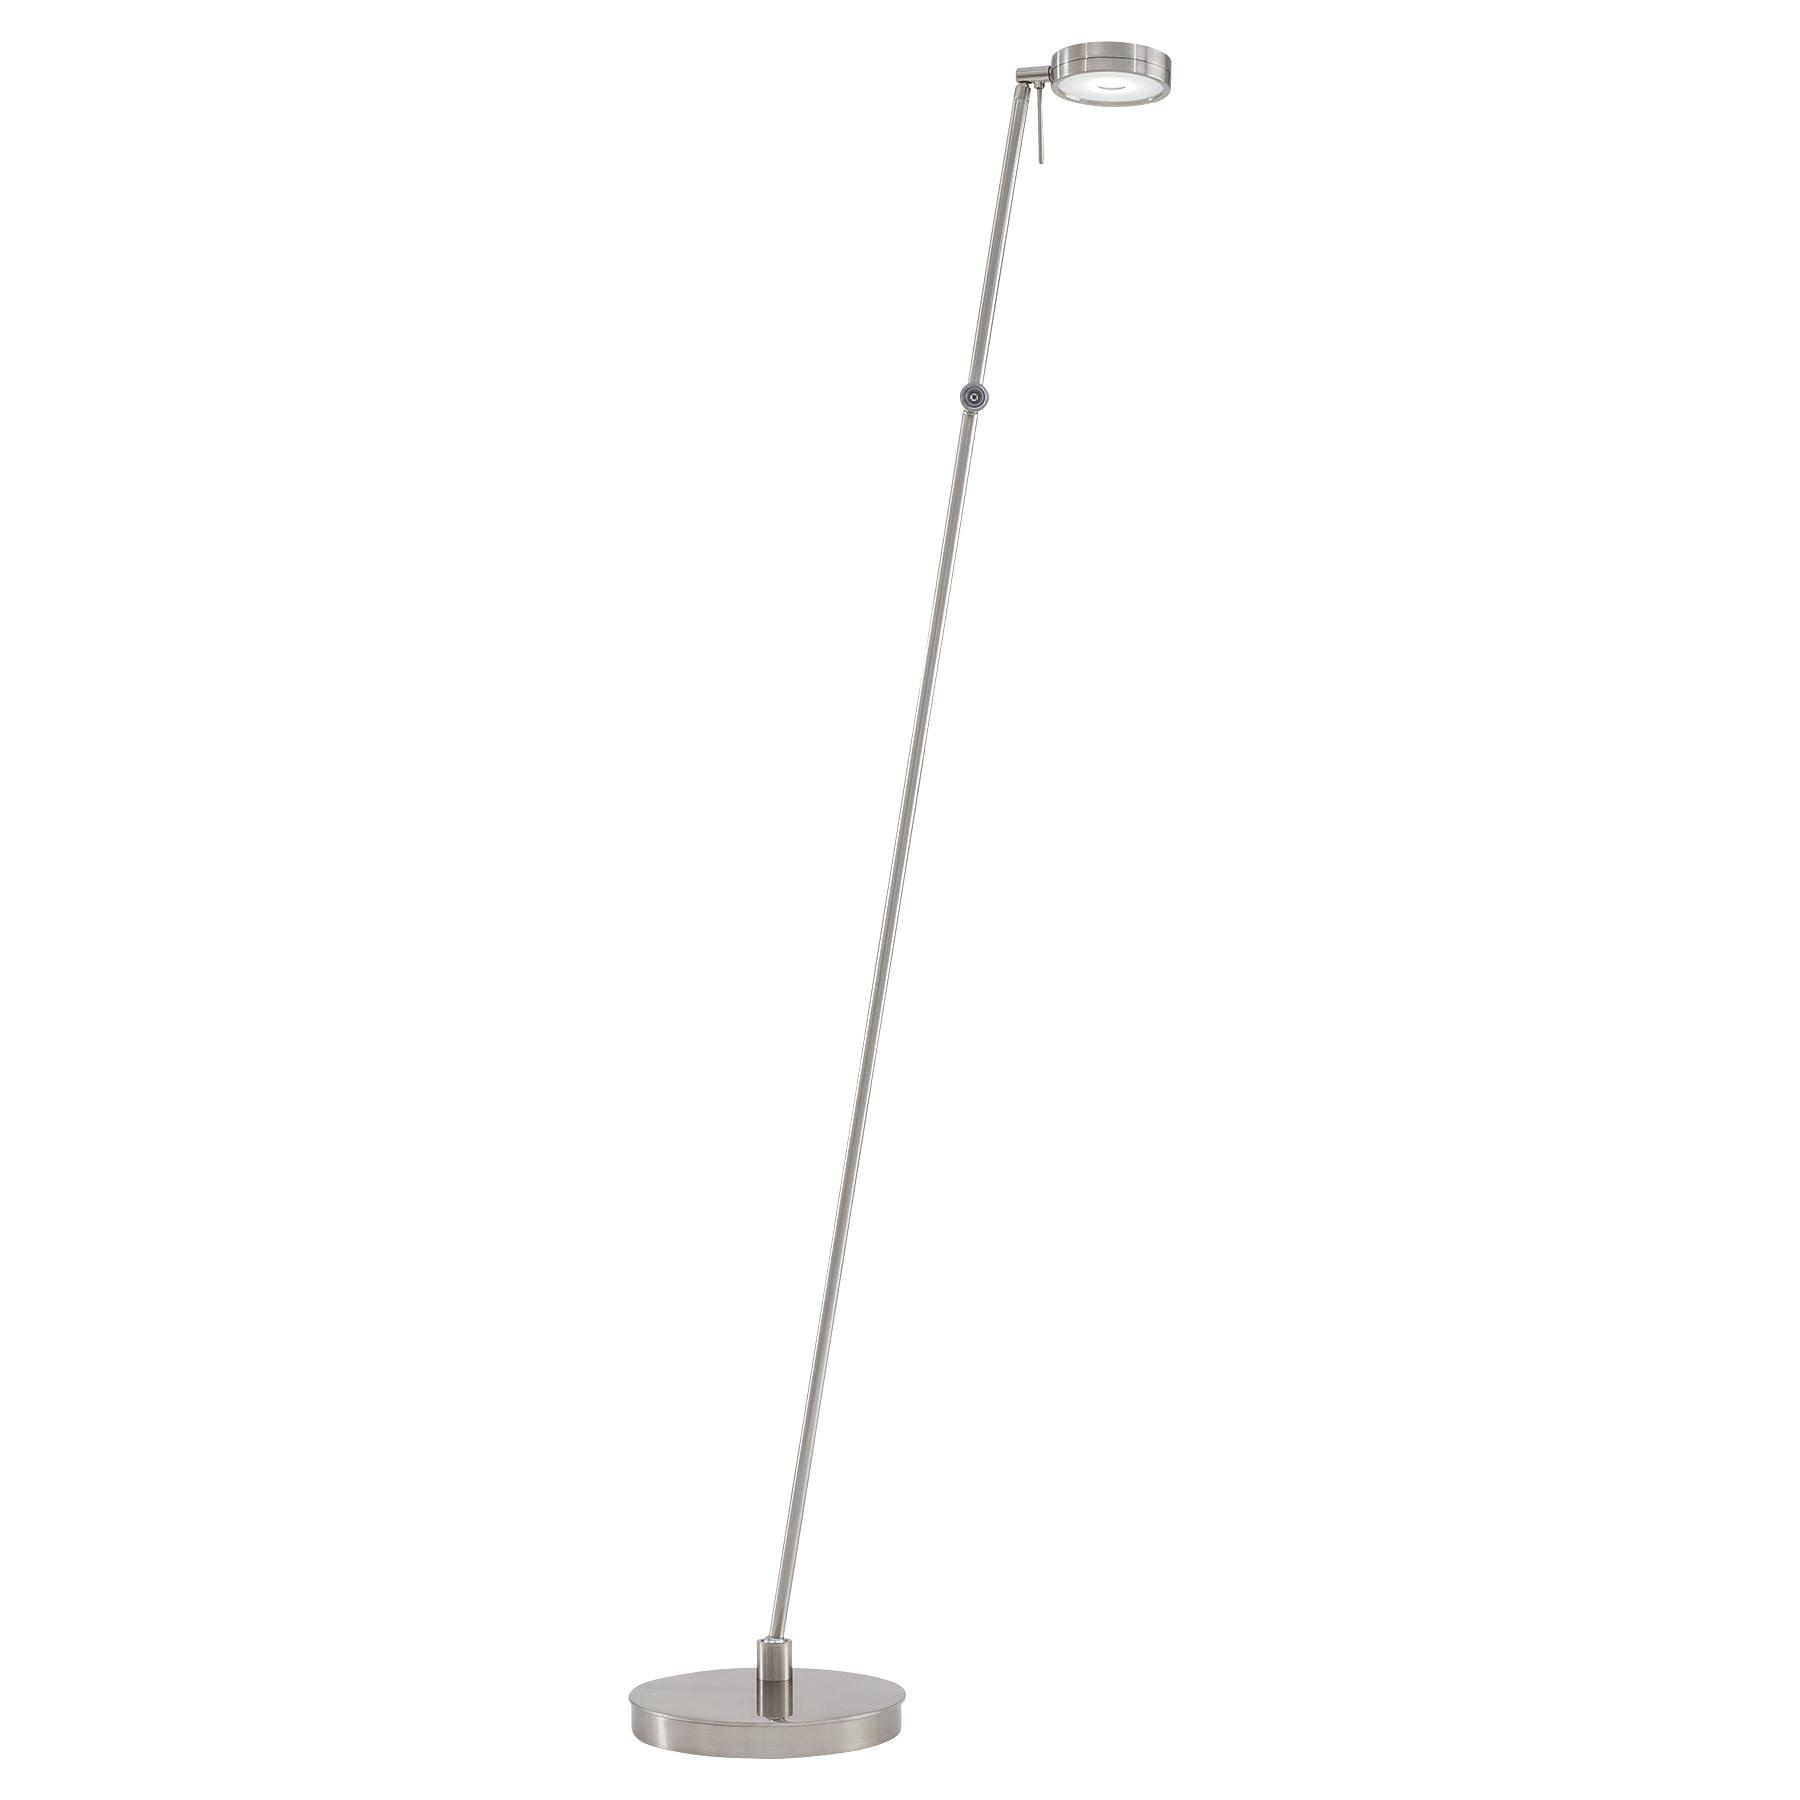 George kovacs p4304 084 modern 1 light led pharmacy floor lamp 8 george kovacs p4304 084 modern 1 light led pharmacy floor lamp 8 watt 120 aloadofball